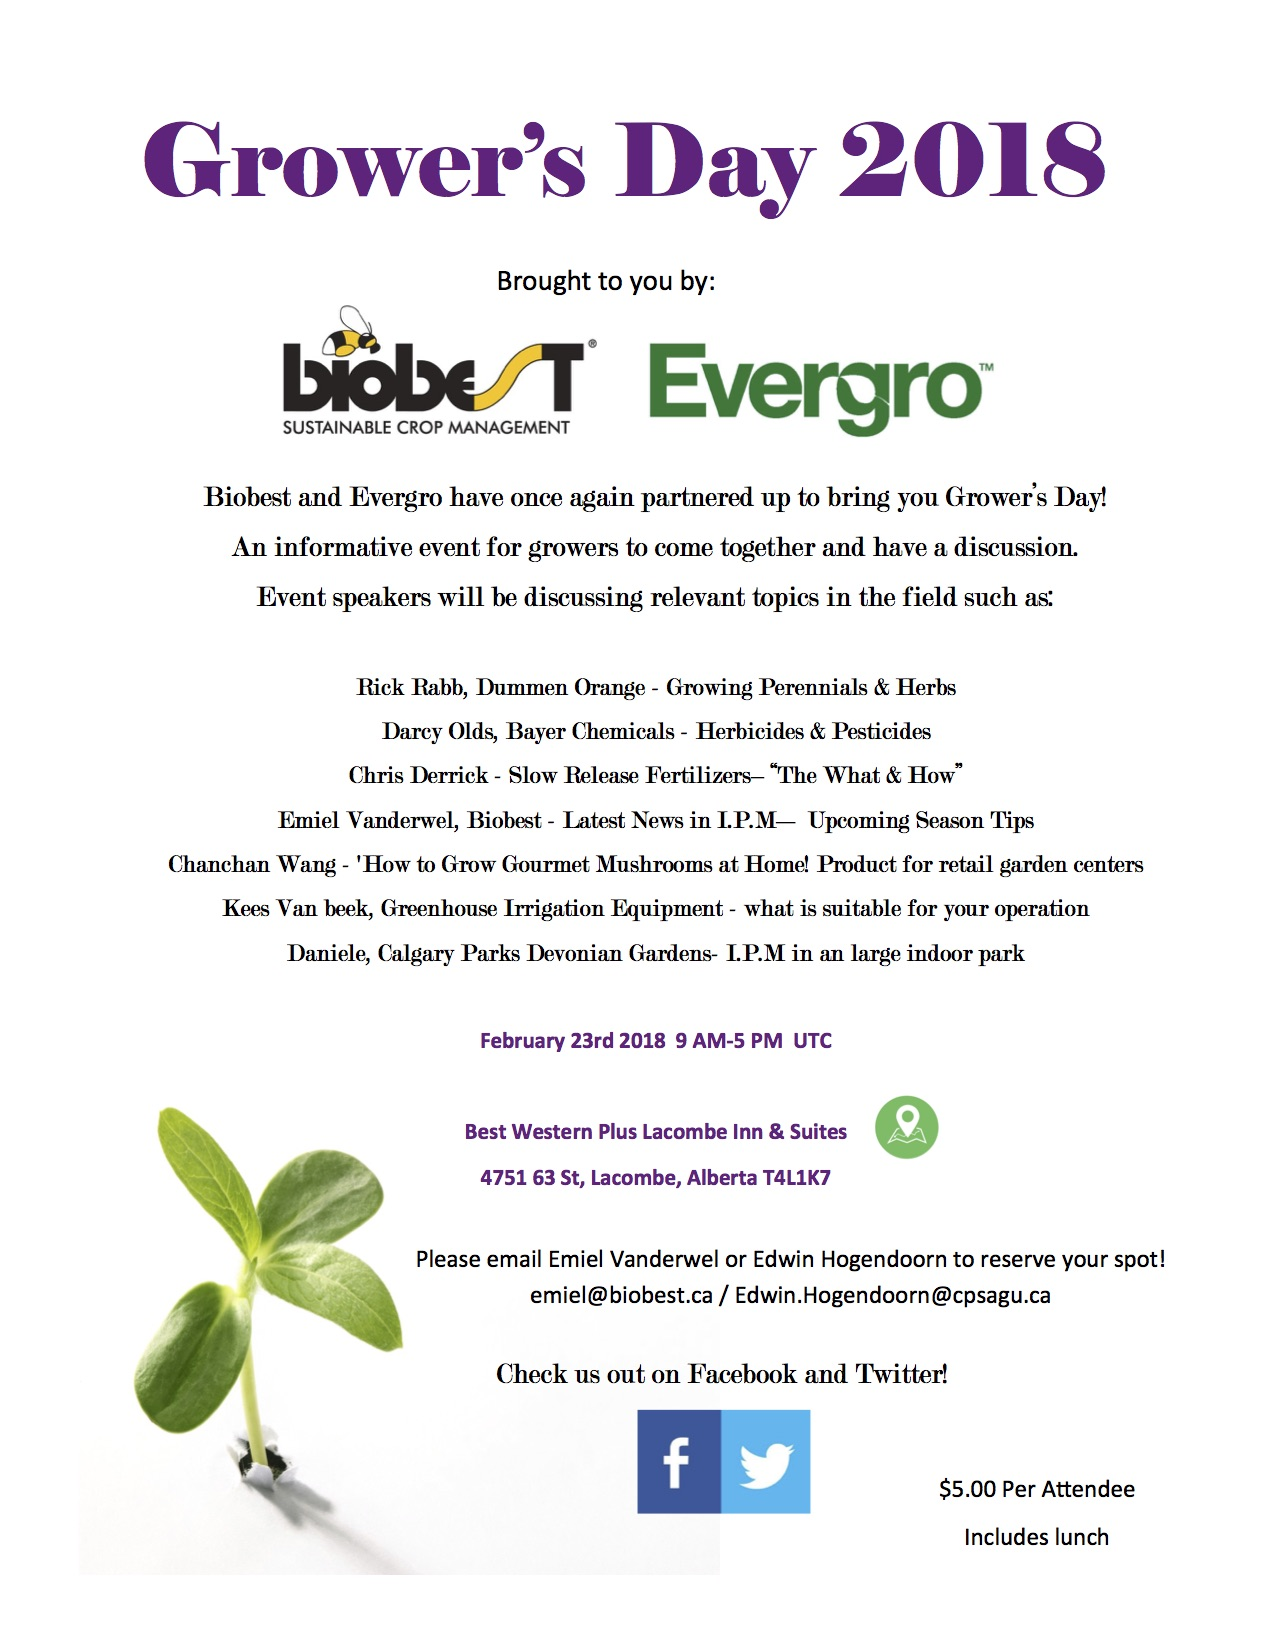 Biobest Evergro Growers Day 2018 002 dragged